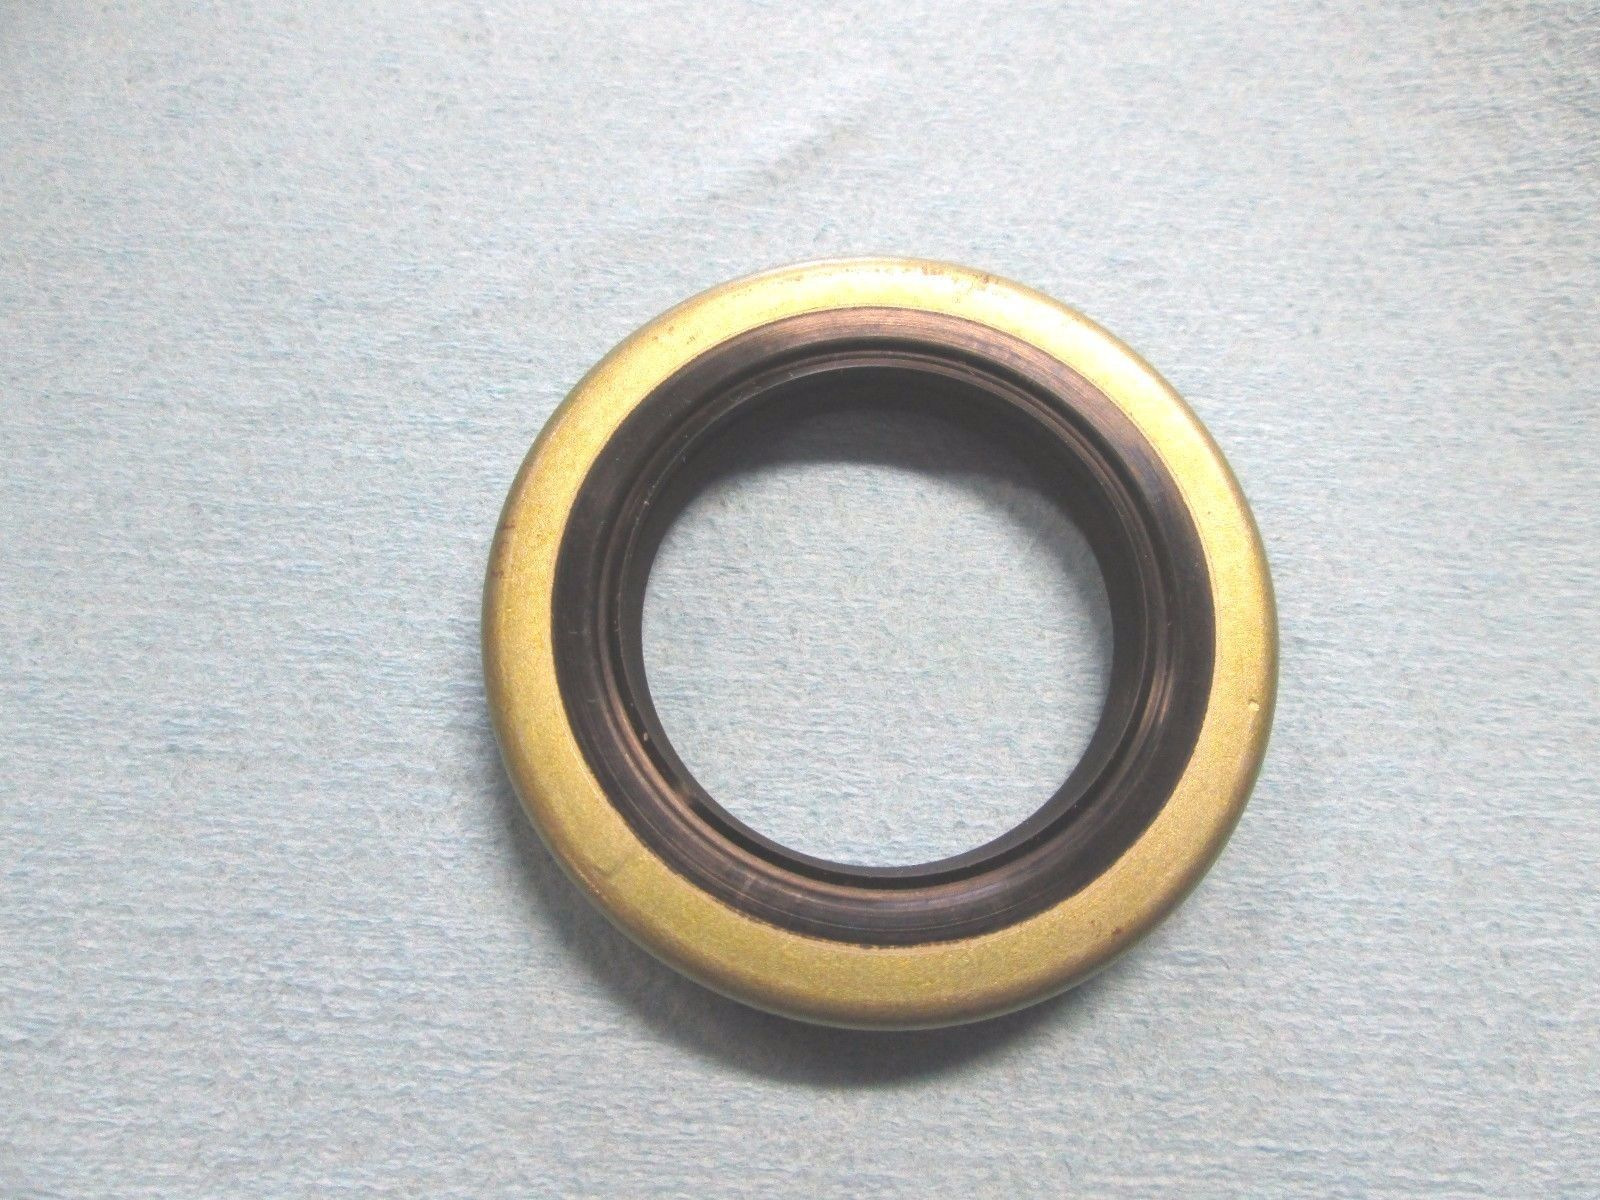 Primary image for X73-37-15, 391-2883-057, P25X, Pump Shaft Seal